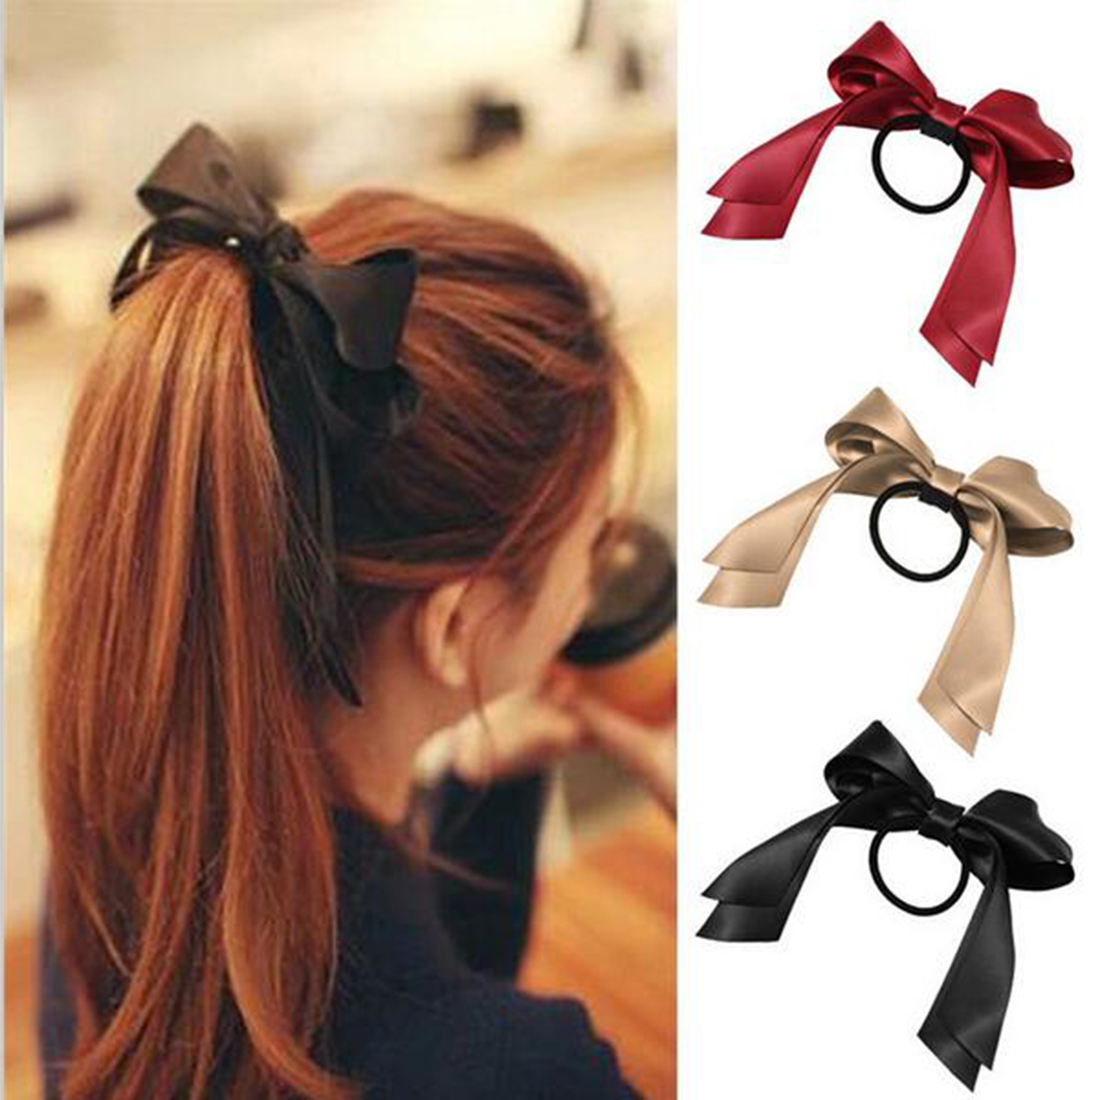 1pc Women Tiara Satin Bow Tie Scrunch Hair Band Ribbon Scrunchie Ponytail Holder Rope Rings Hair Accessories for Child Kids Girl